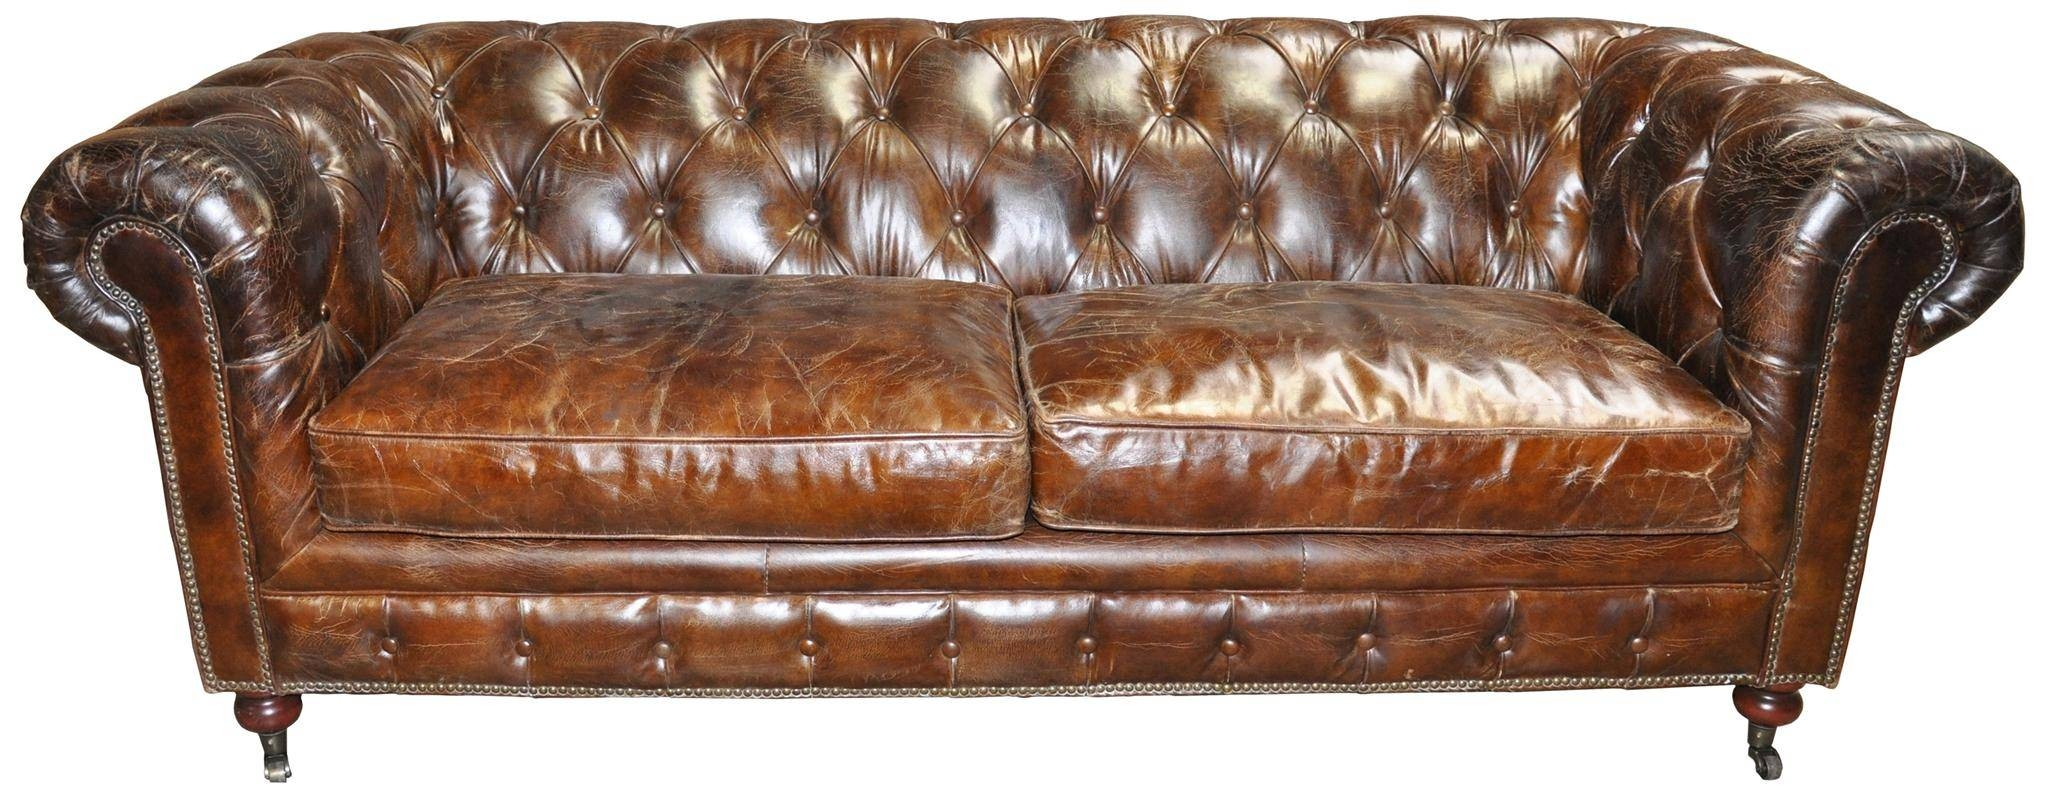 Tufted Leather Sofa | Roselawnlutheran regarding Brown Tufted Sofas (Image 15 of 15)